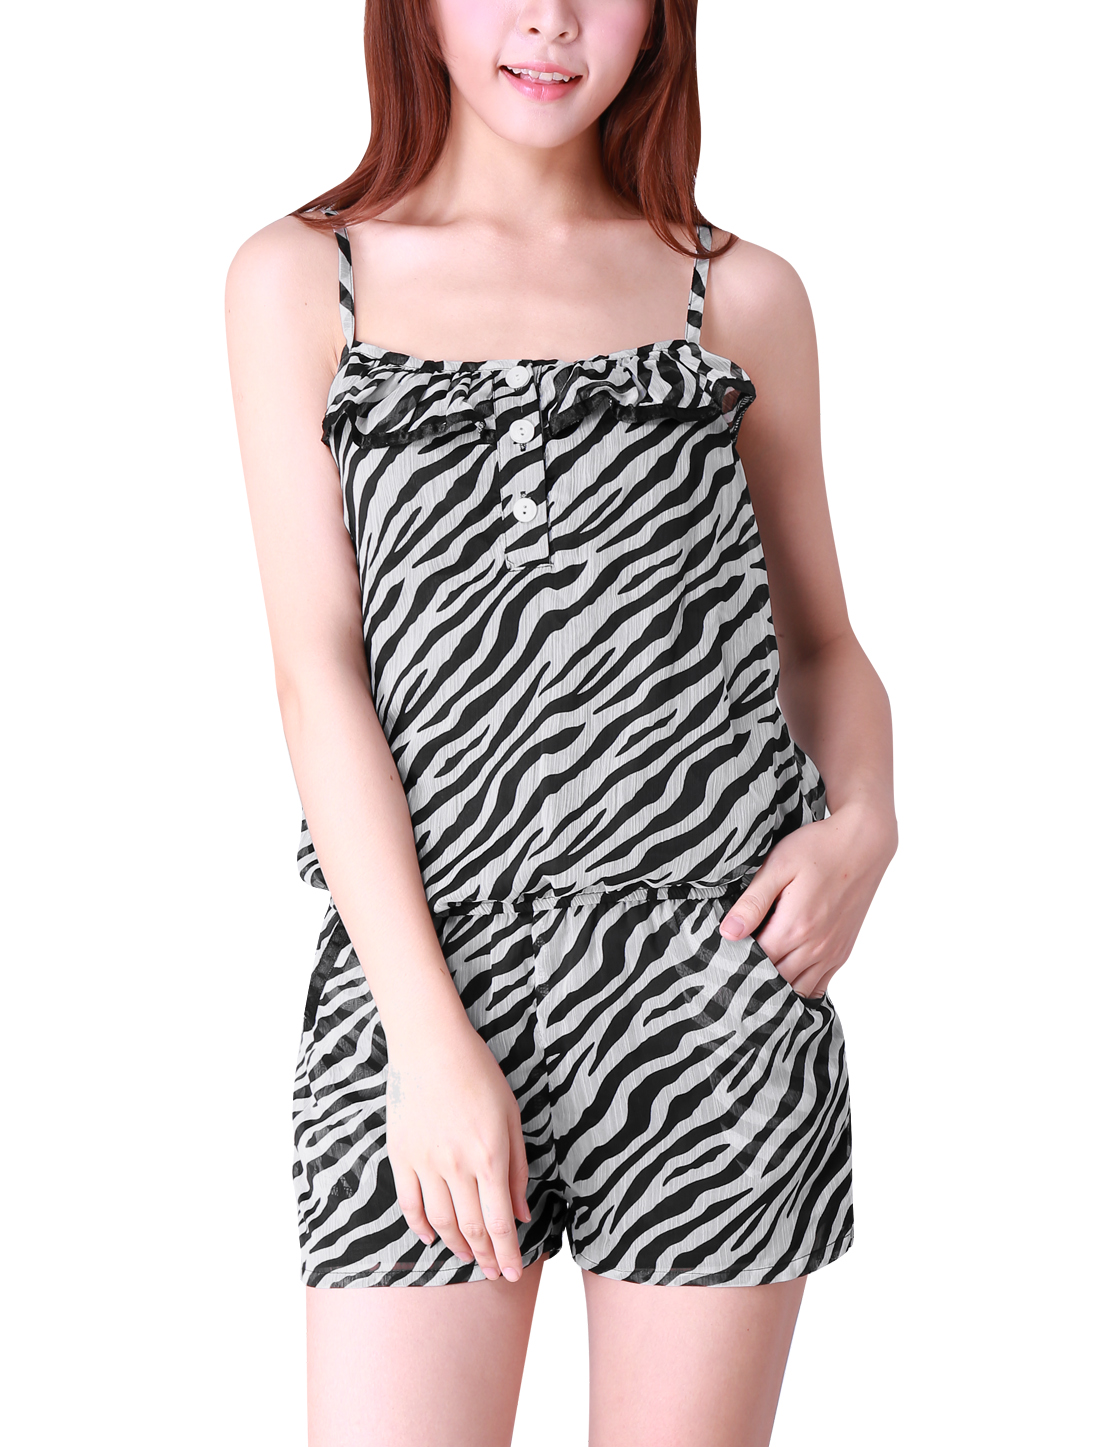 Chic Black White Zebra Printed 1/2 Button Front Rompers L for Lady